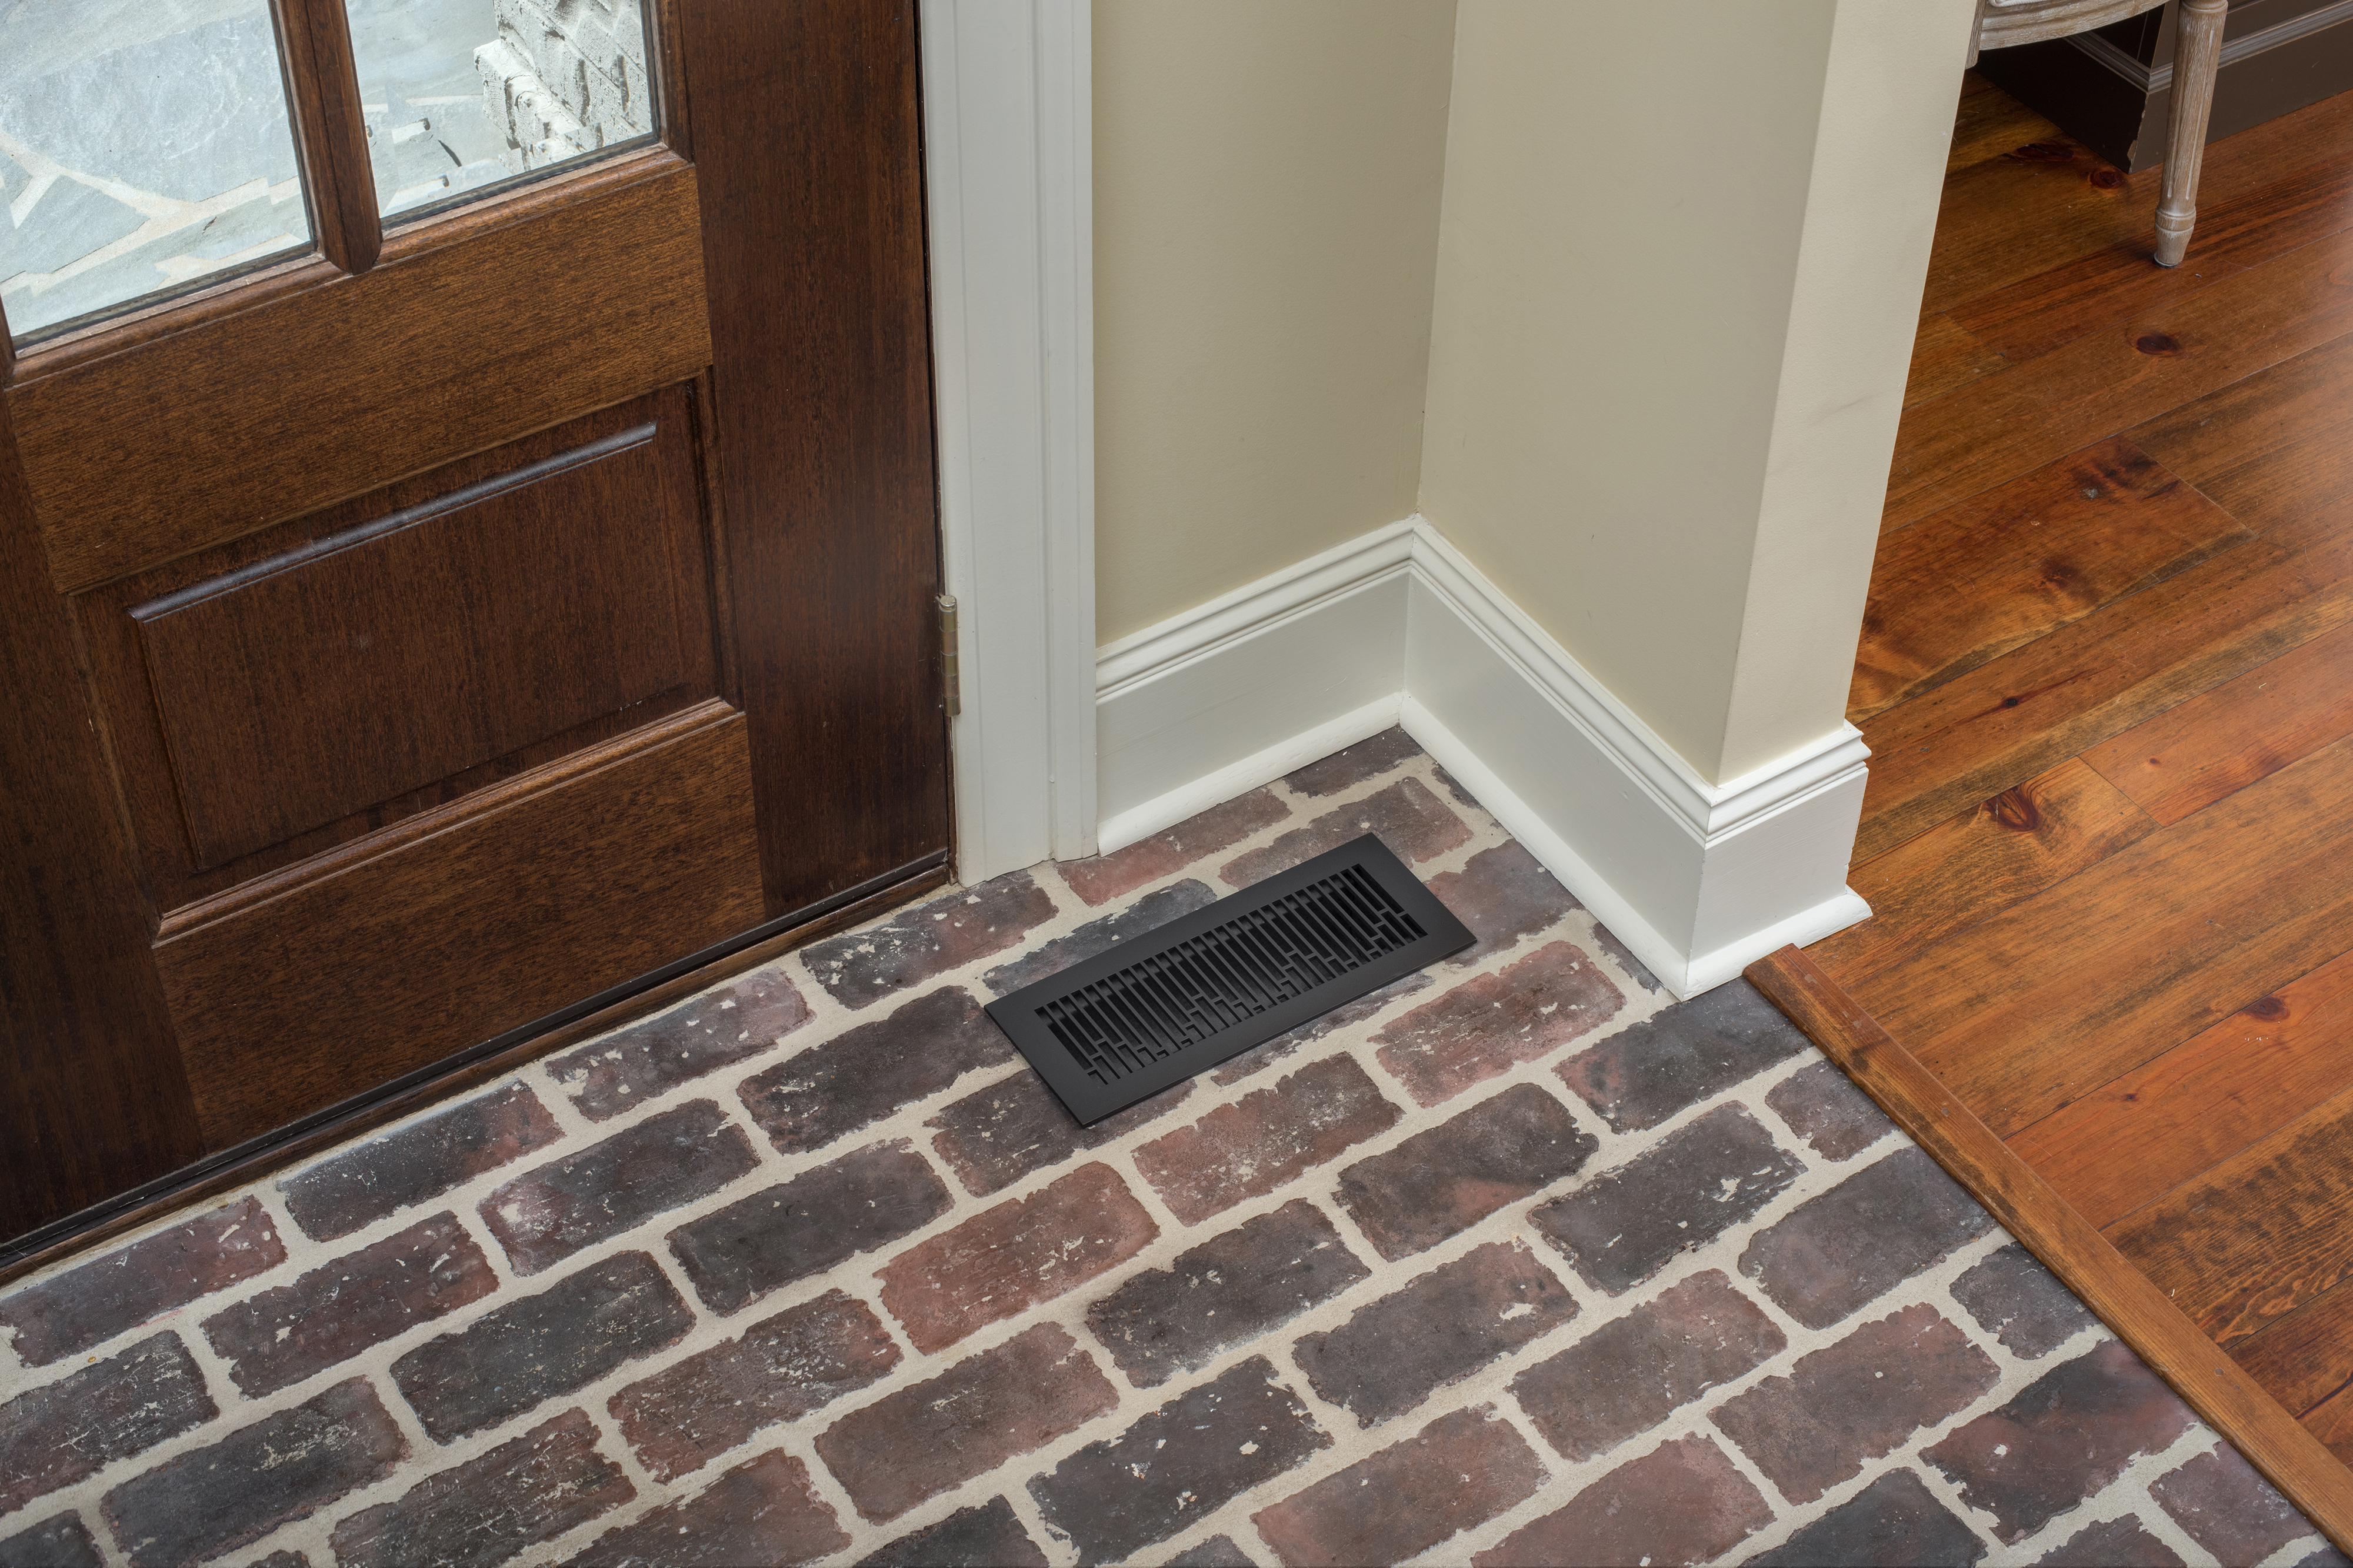 Different Grille Installation and Grille Options for Your Old Home